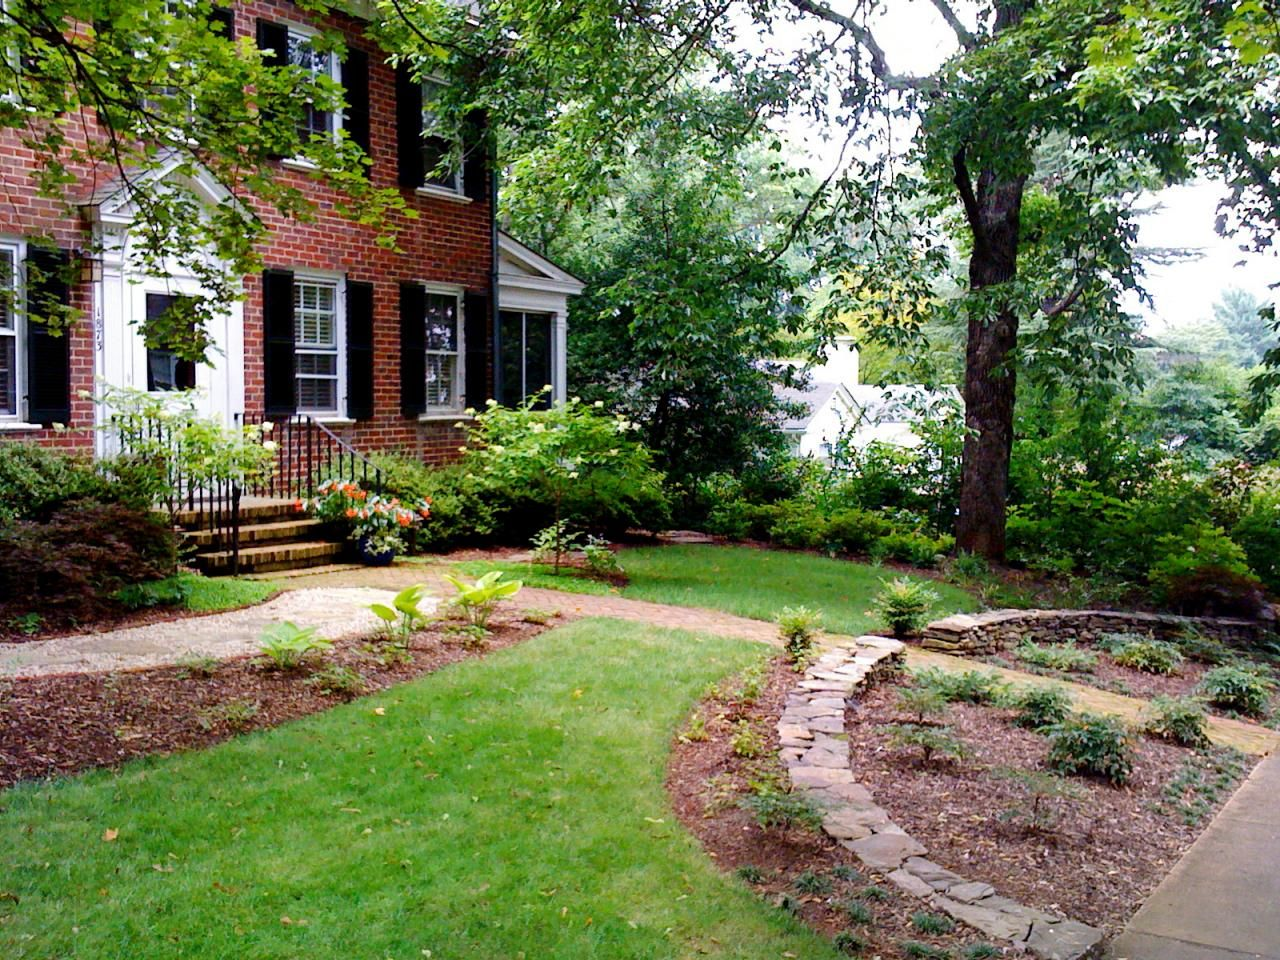 simple landscaping creates an inviting elegant scene on front yard landscaping ideas id=25647